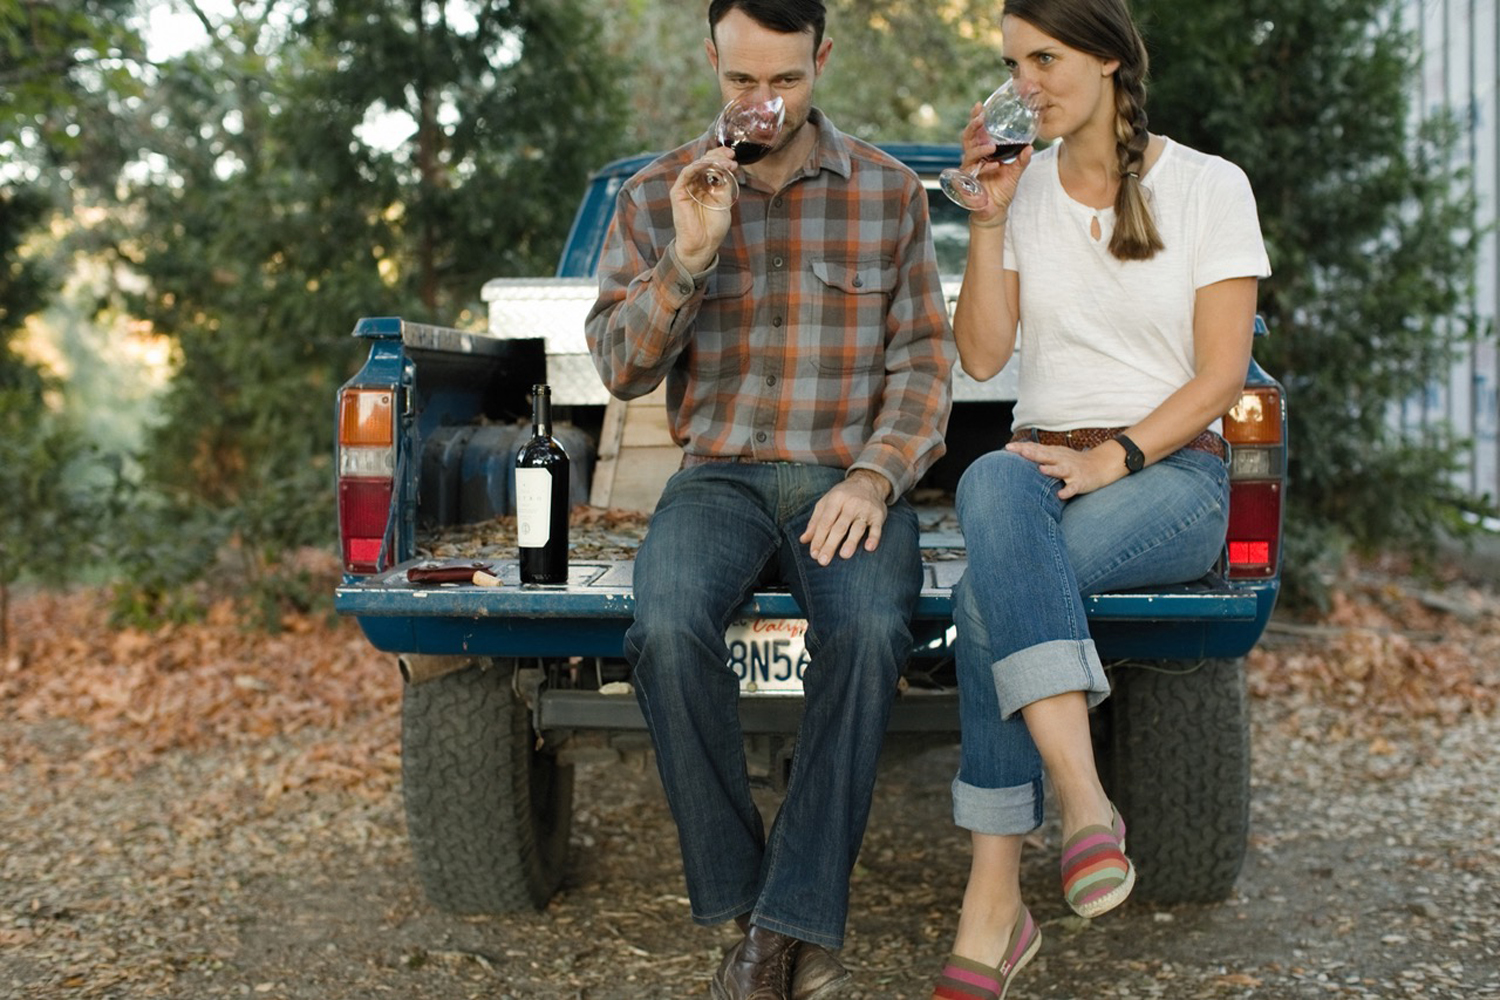 couple drinking wine, back of truck